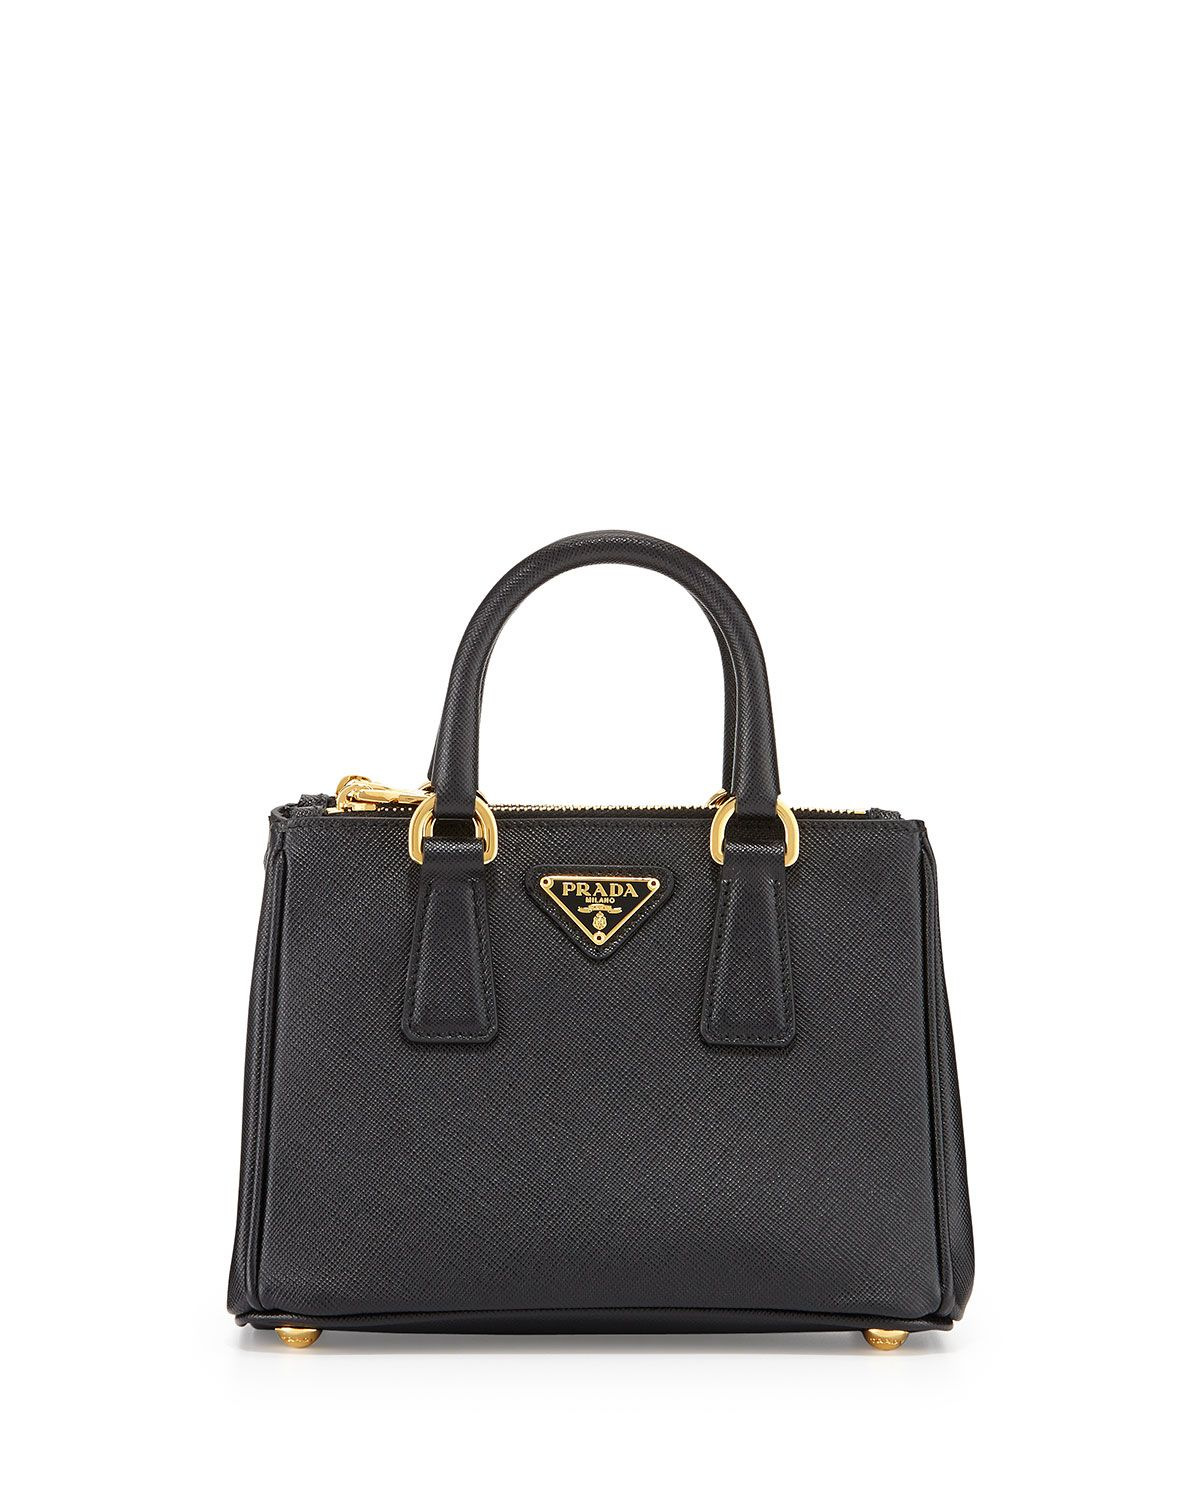 Prada Saffiano Mini Galleria Crossbody Bag b30b9f715ffcb